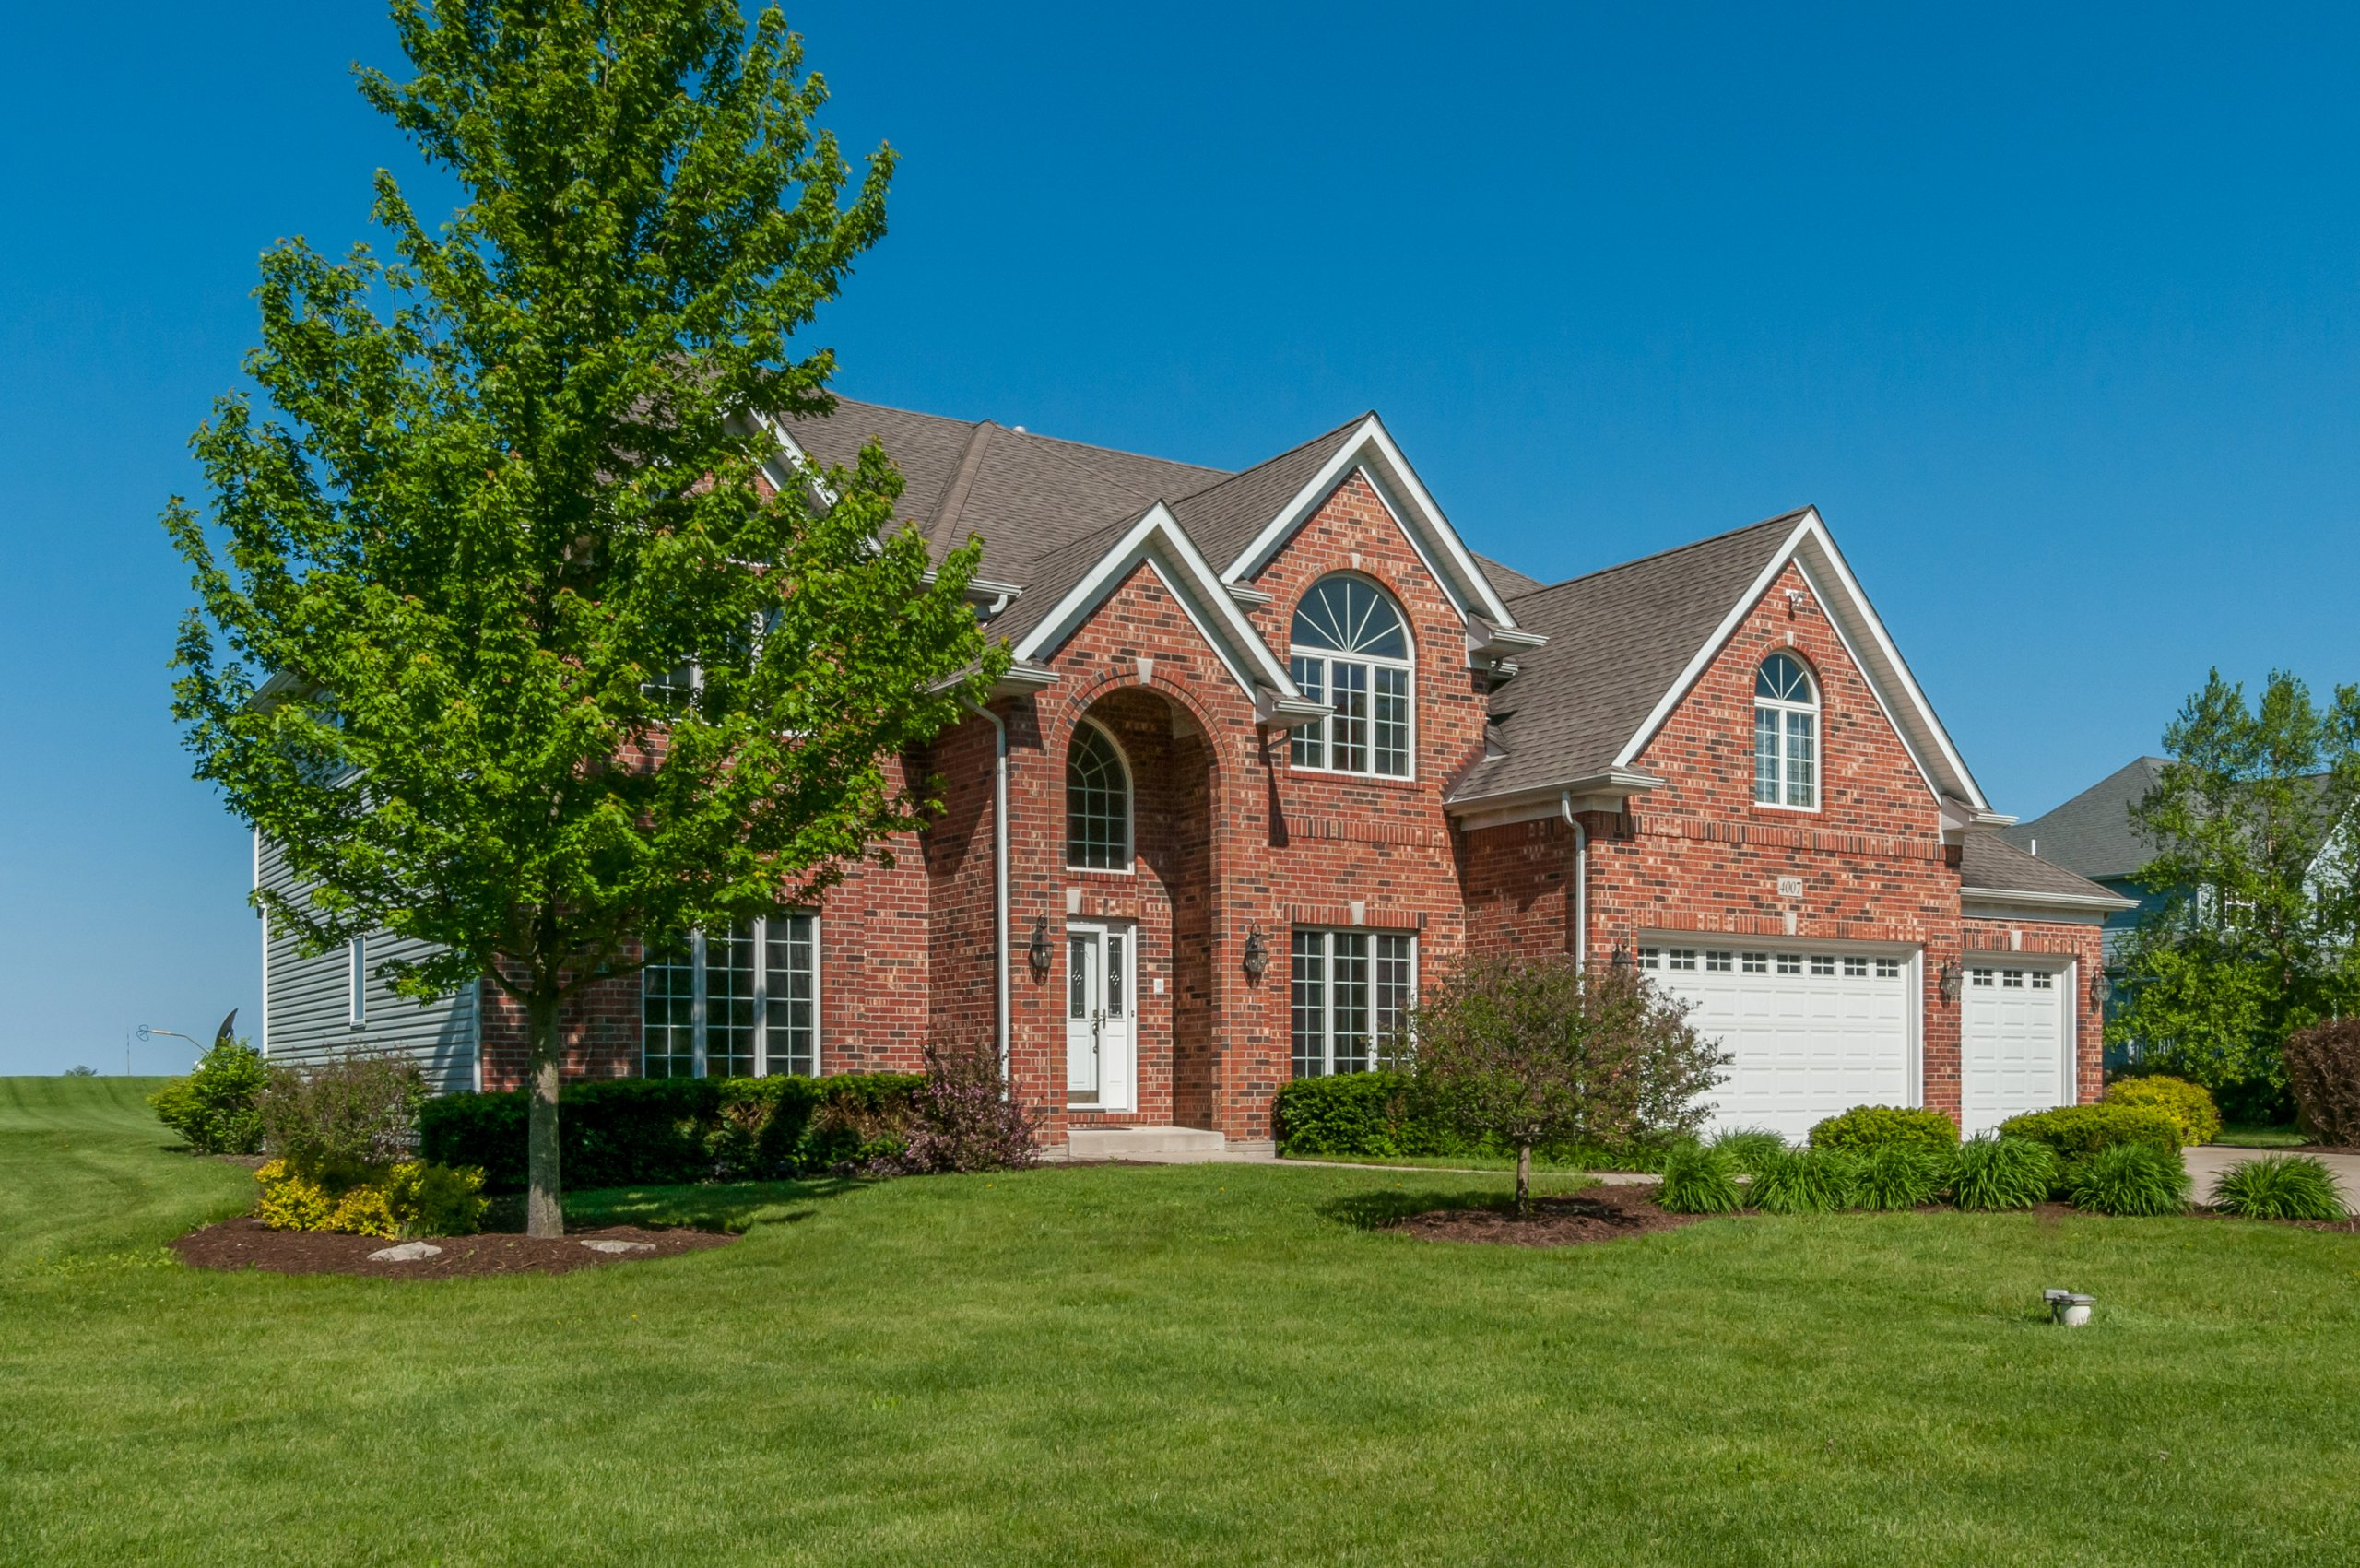 Upscale brick estate home in Somonauk, Illinois